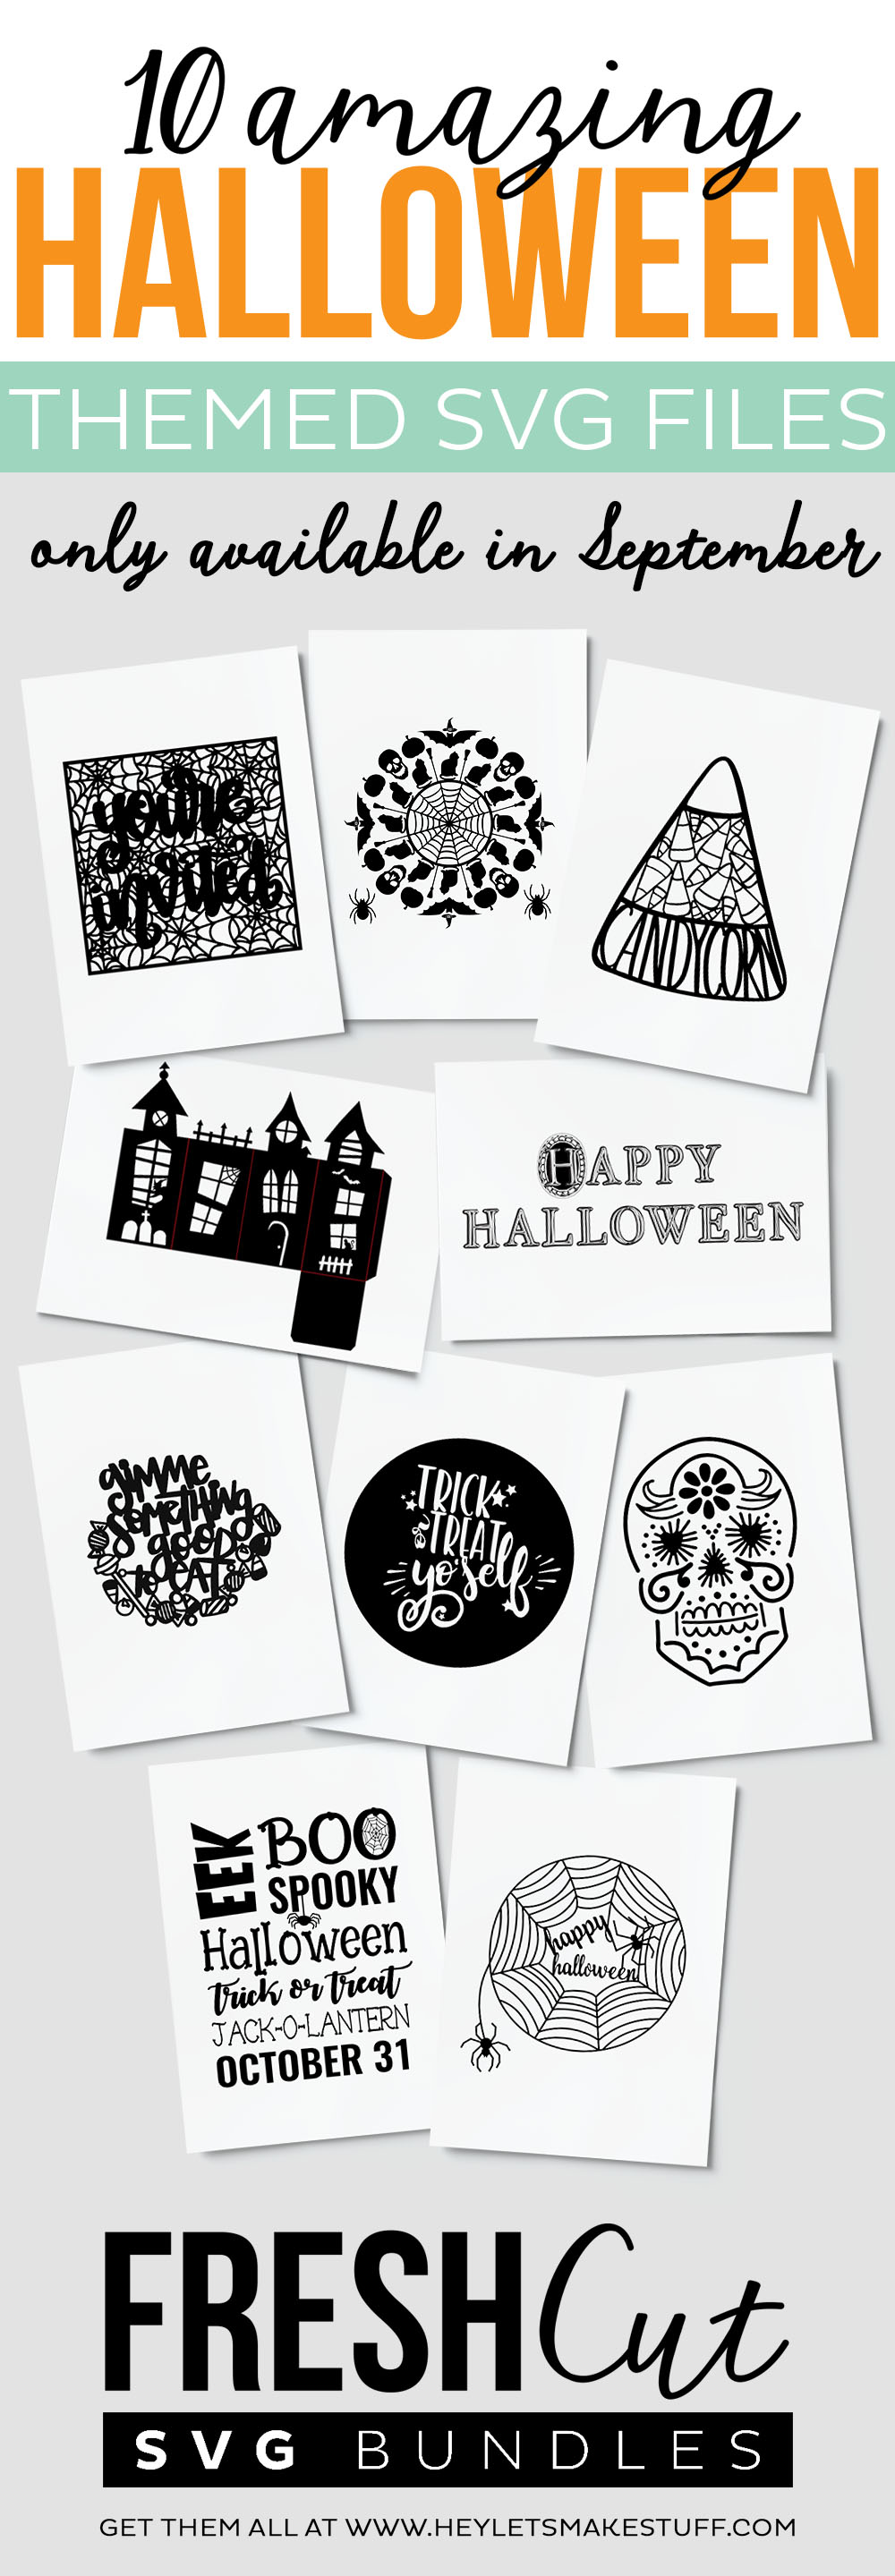 10 Amazing Halloween SVG cut files - perfect for all your Halloween craft projects